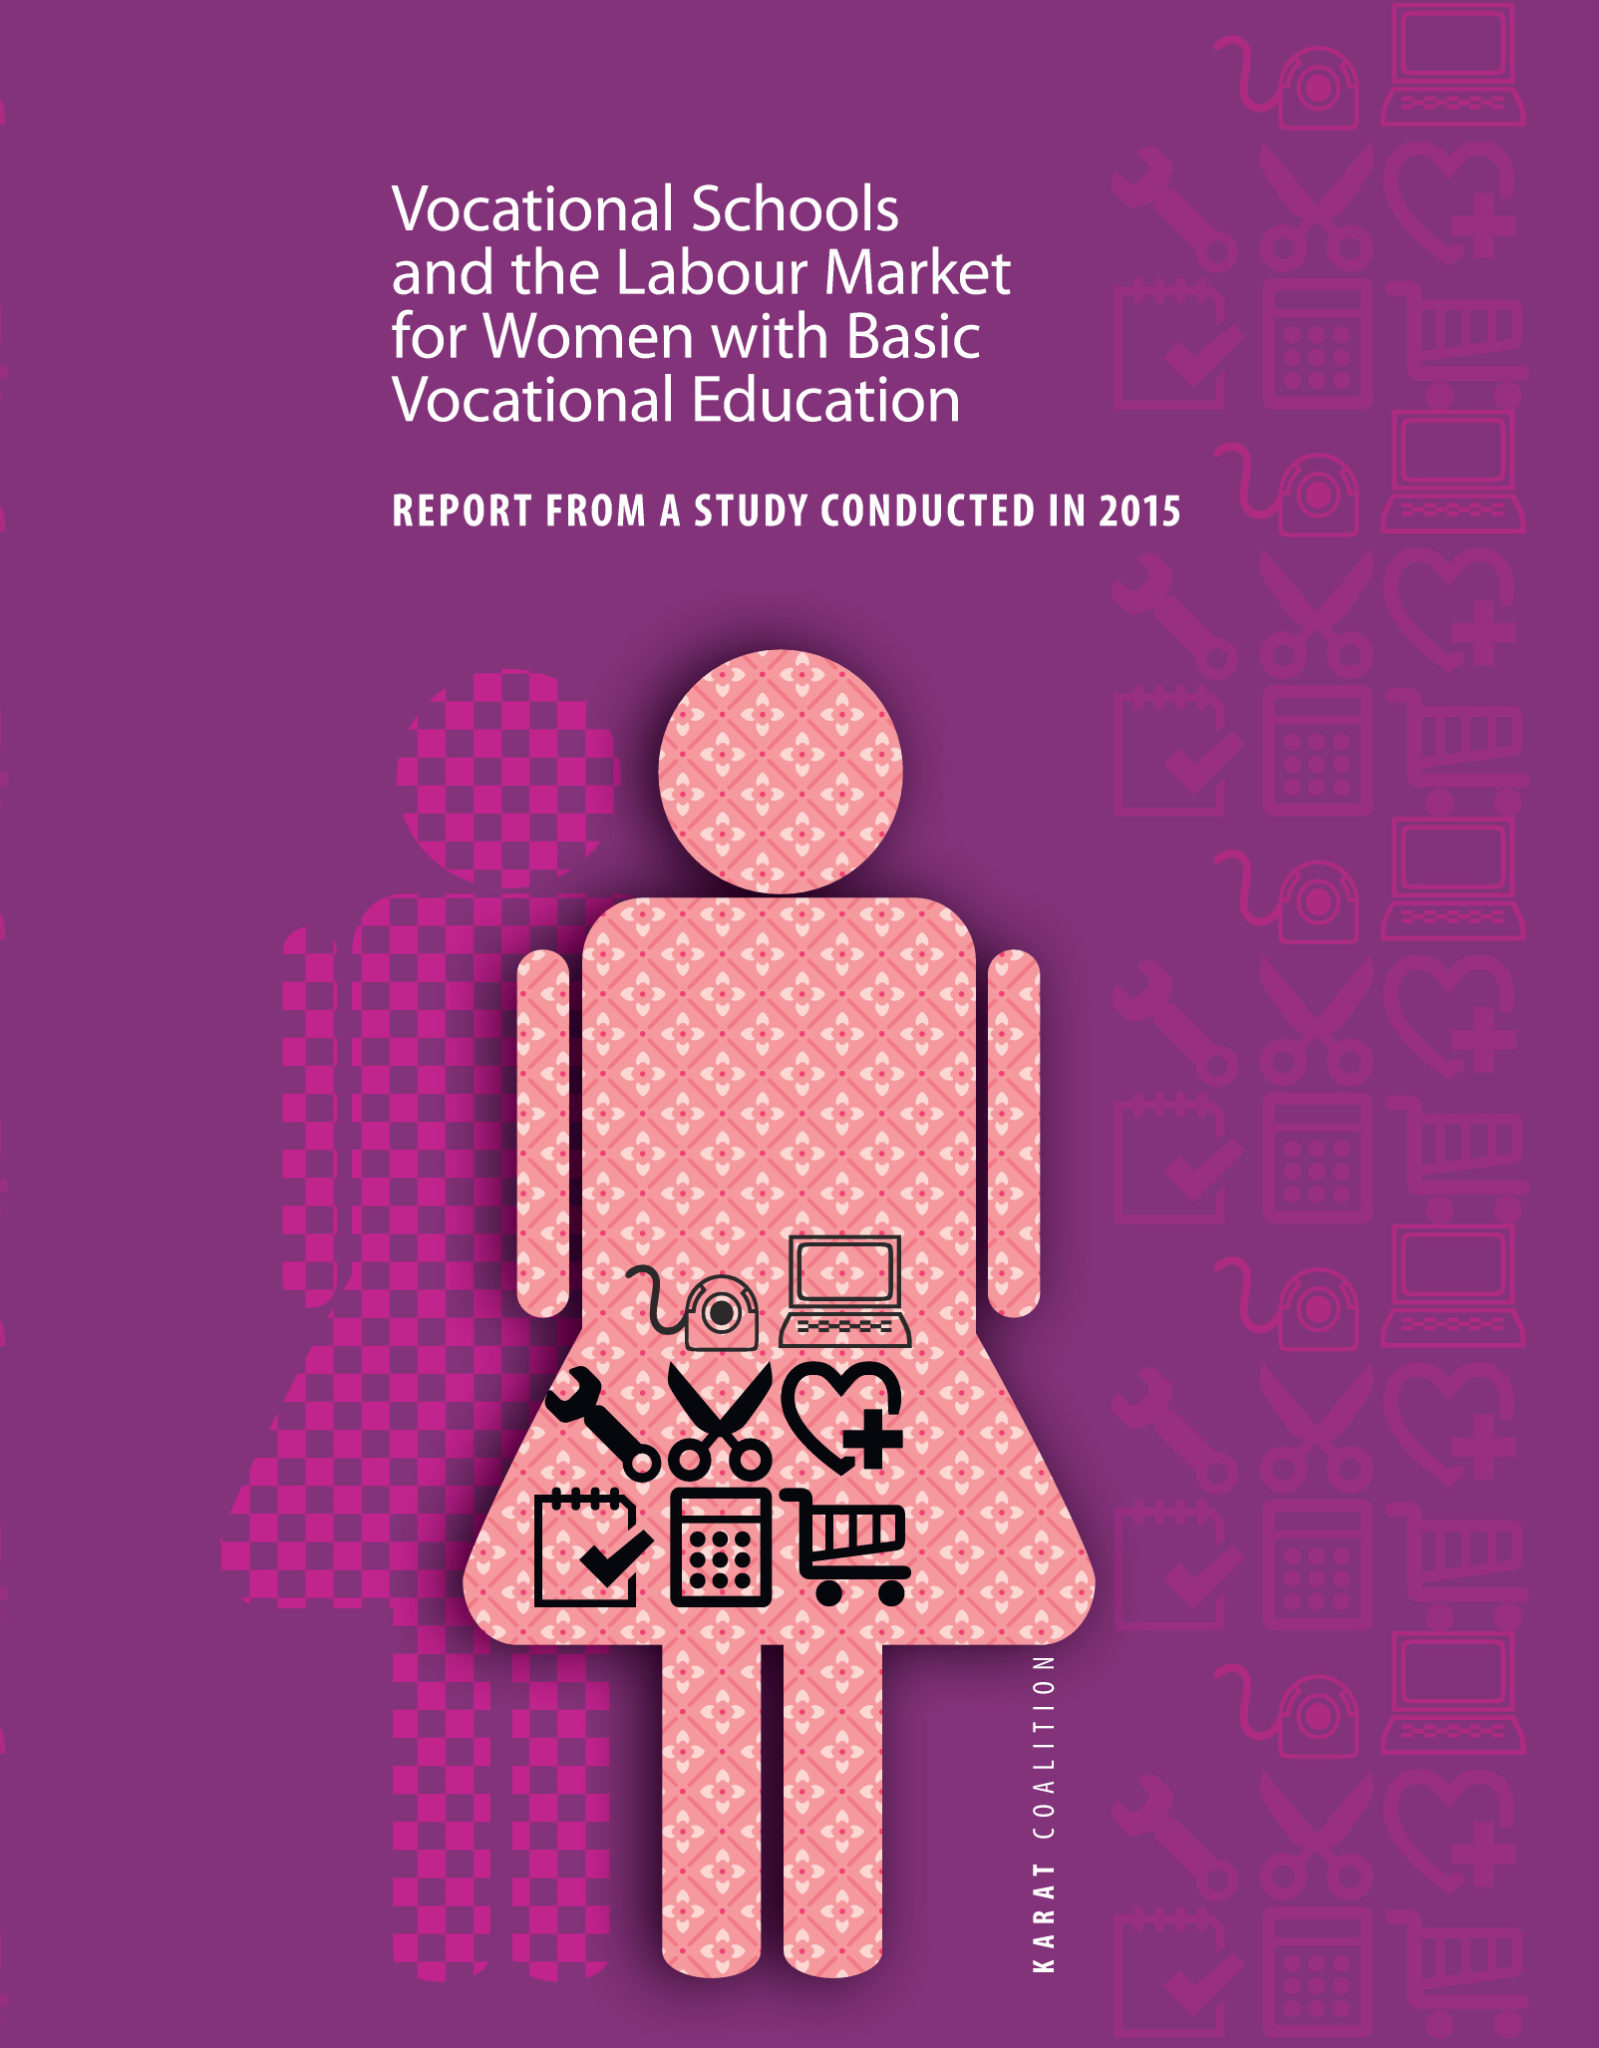 Report: Vocational Schools and the Labour Market for Women with Basic Vocational Education